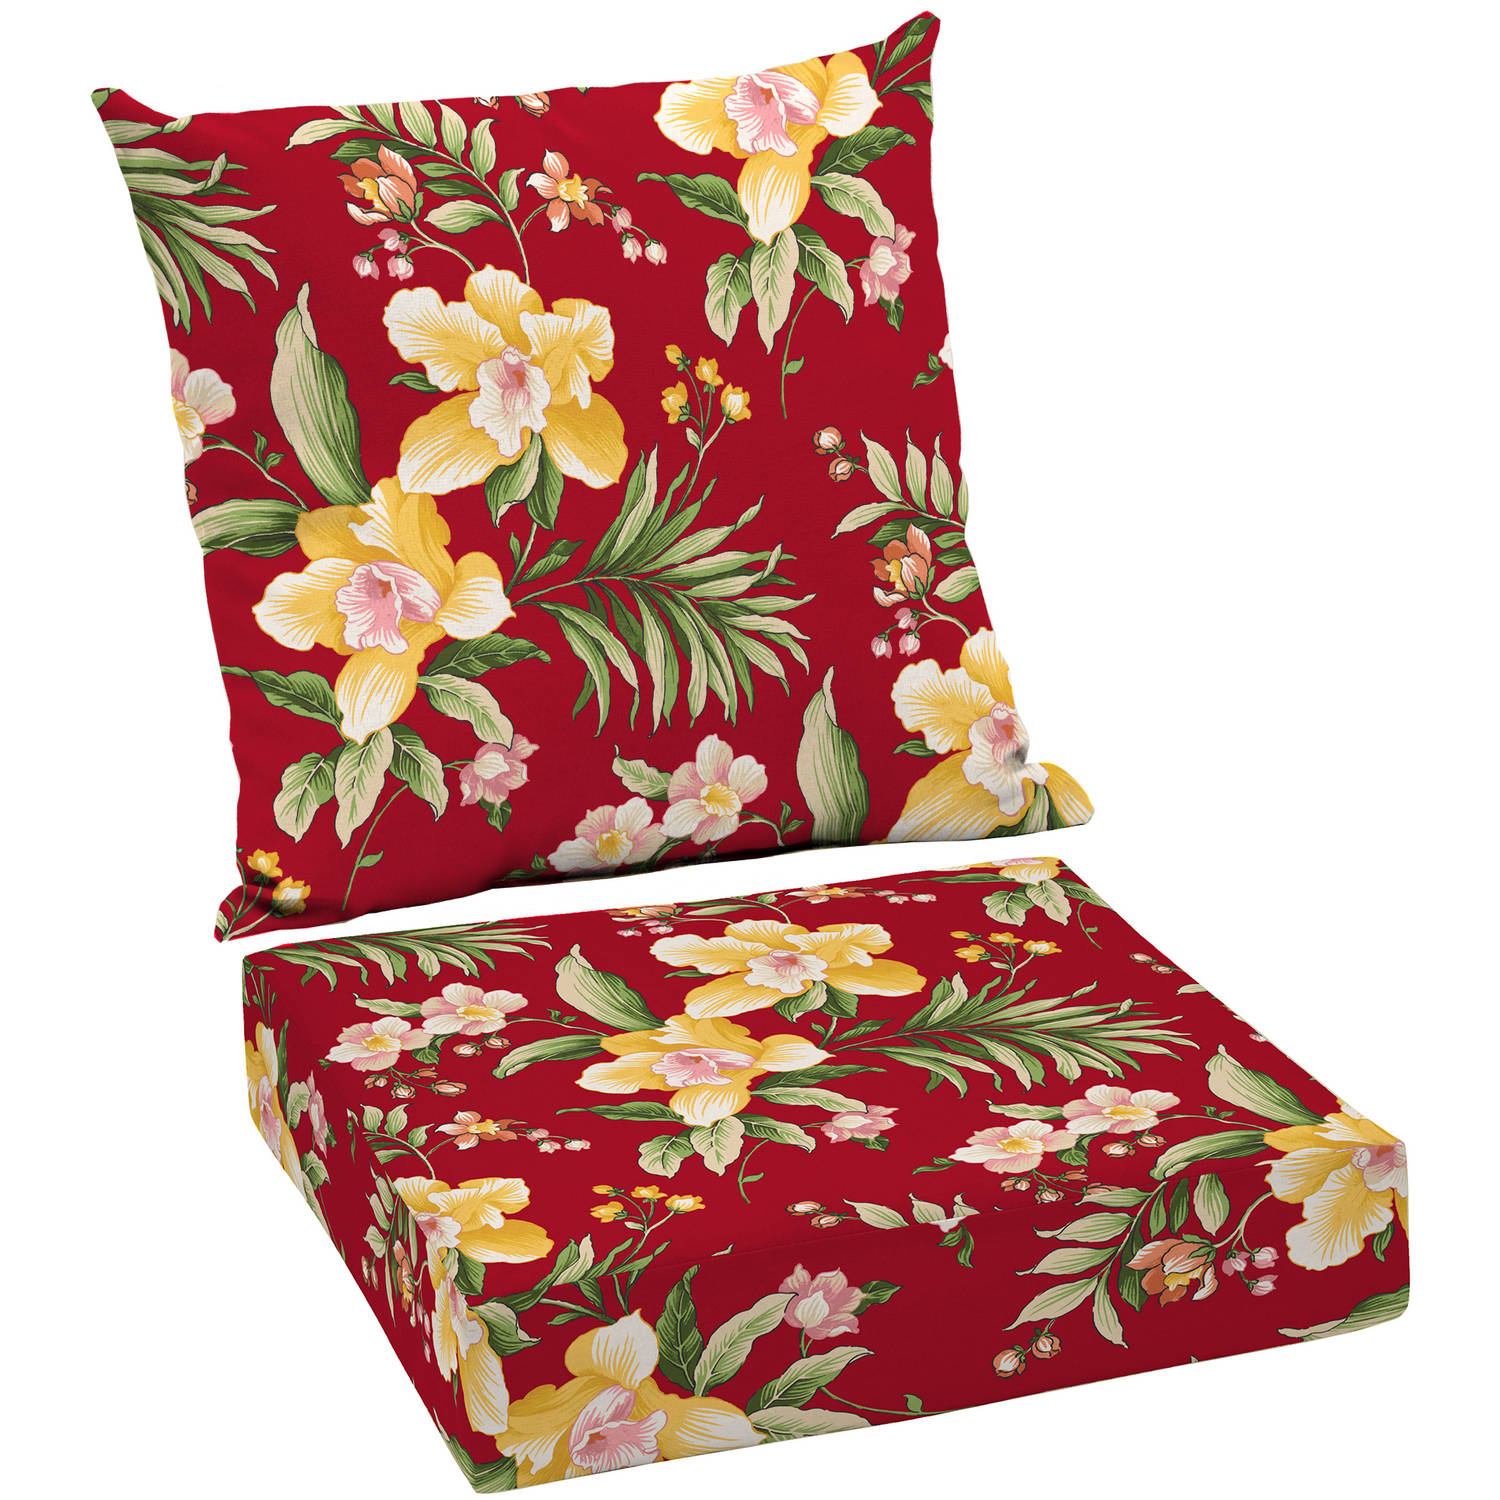 Patio furniture cushions 22 inches round free home design ideas - Patio Furniture Cushions 22 Inches Round Free Home Design Ideas As Seen On Tv Miracle Download